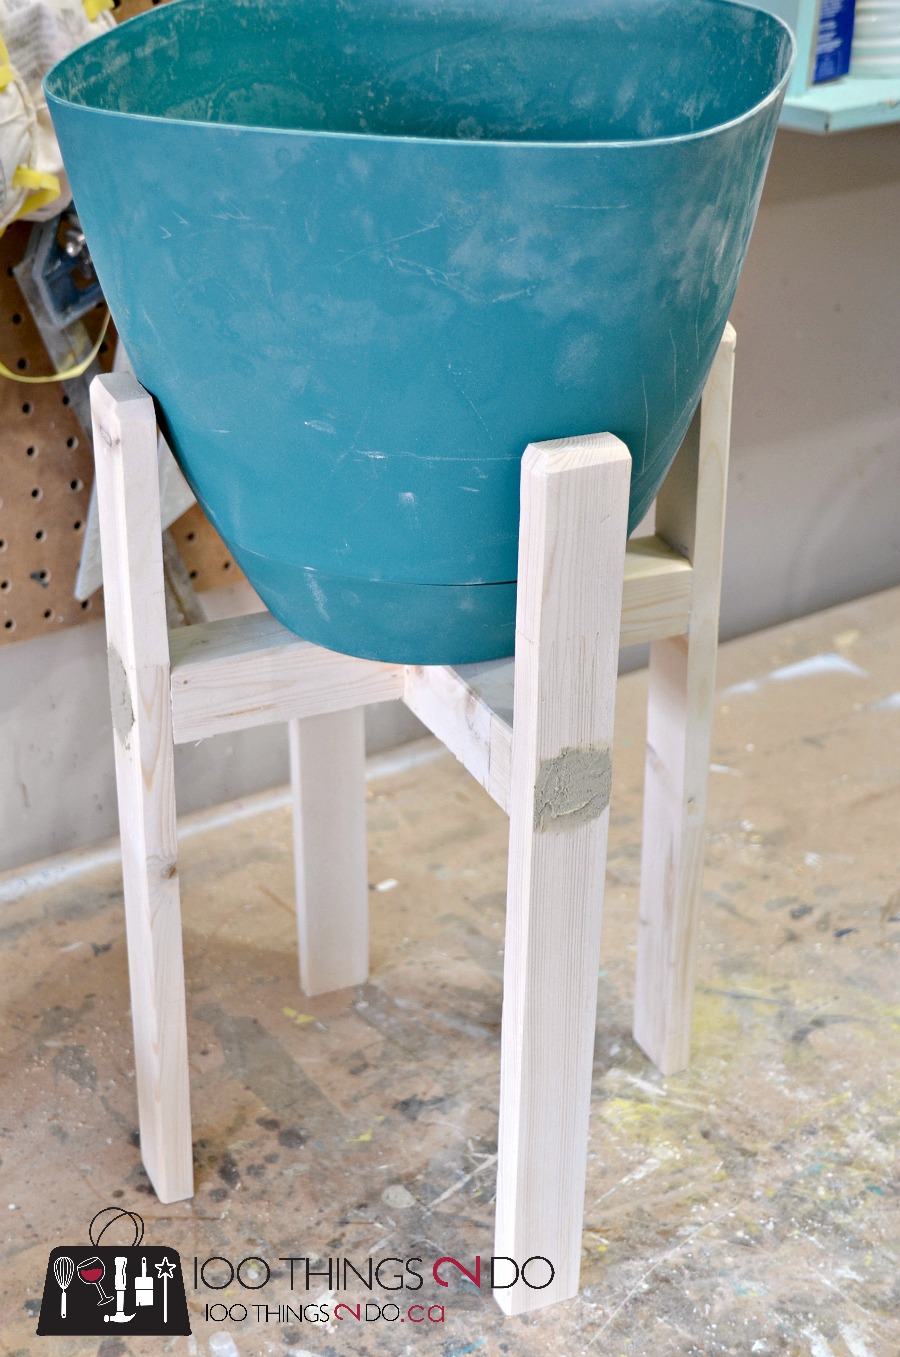 Diy Plant Stand West Elm Knock Off